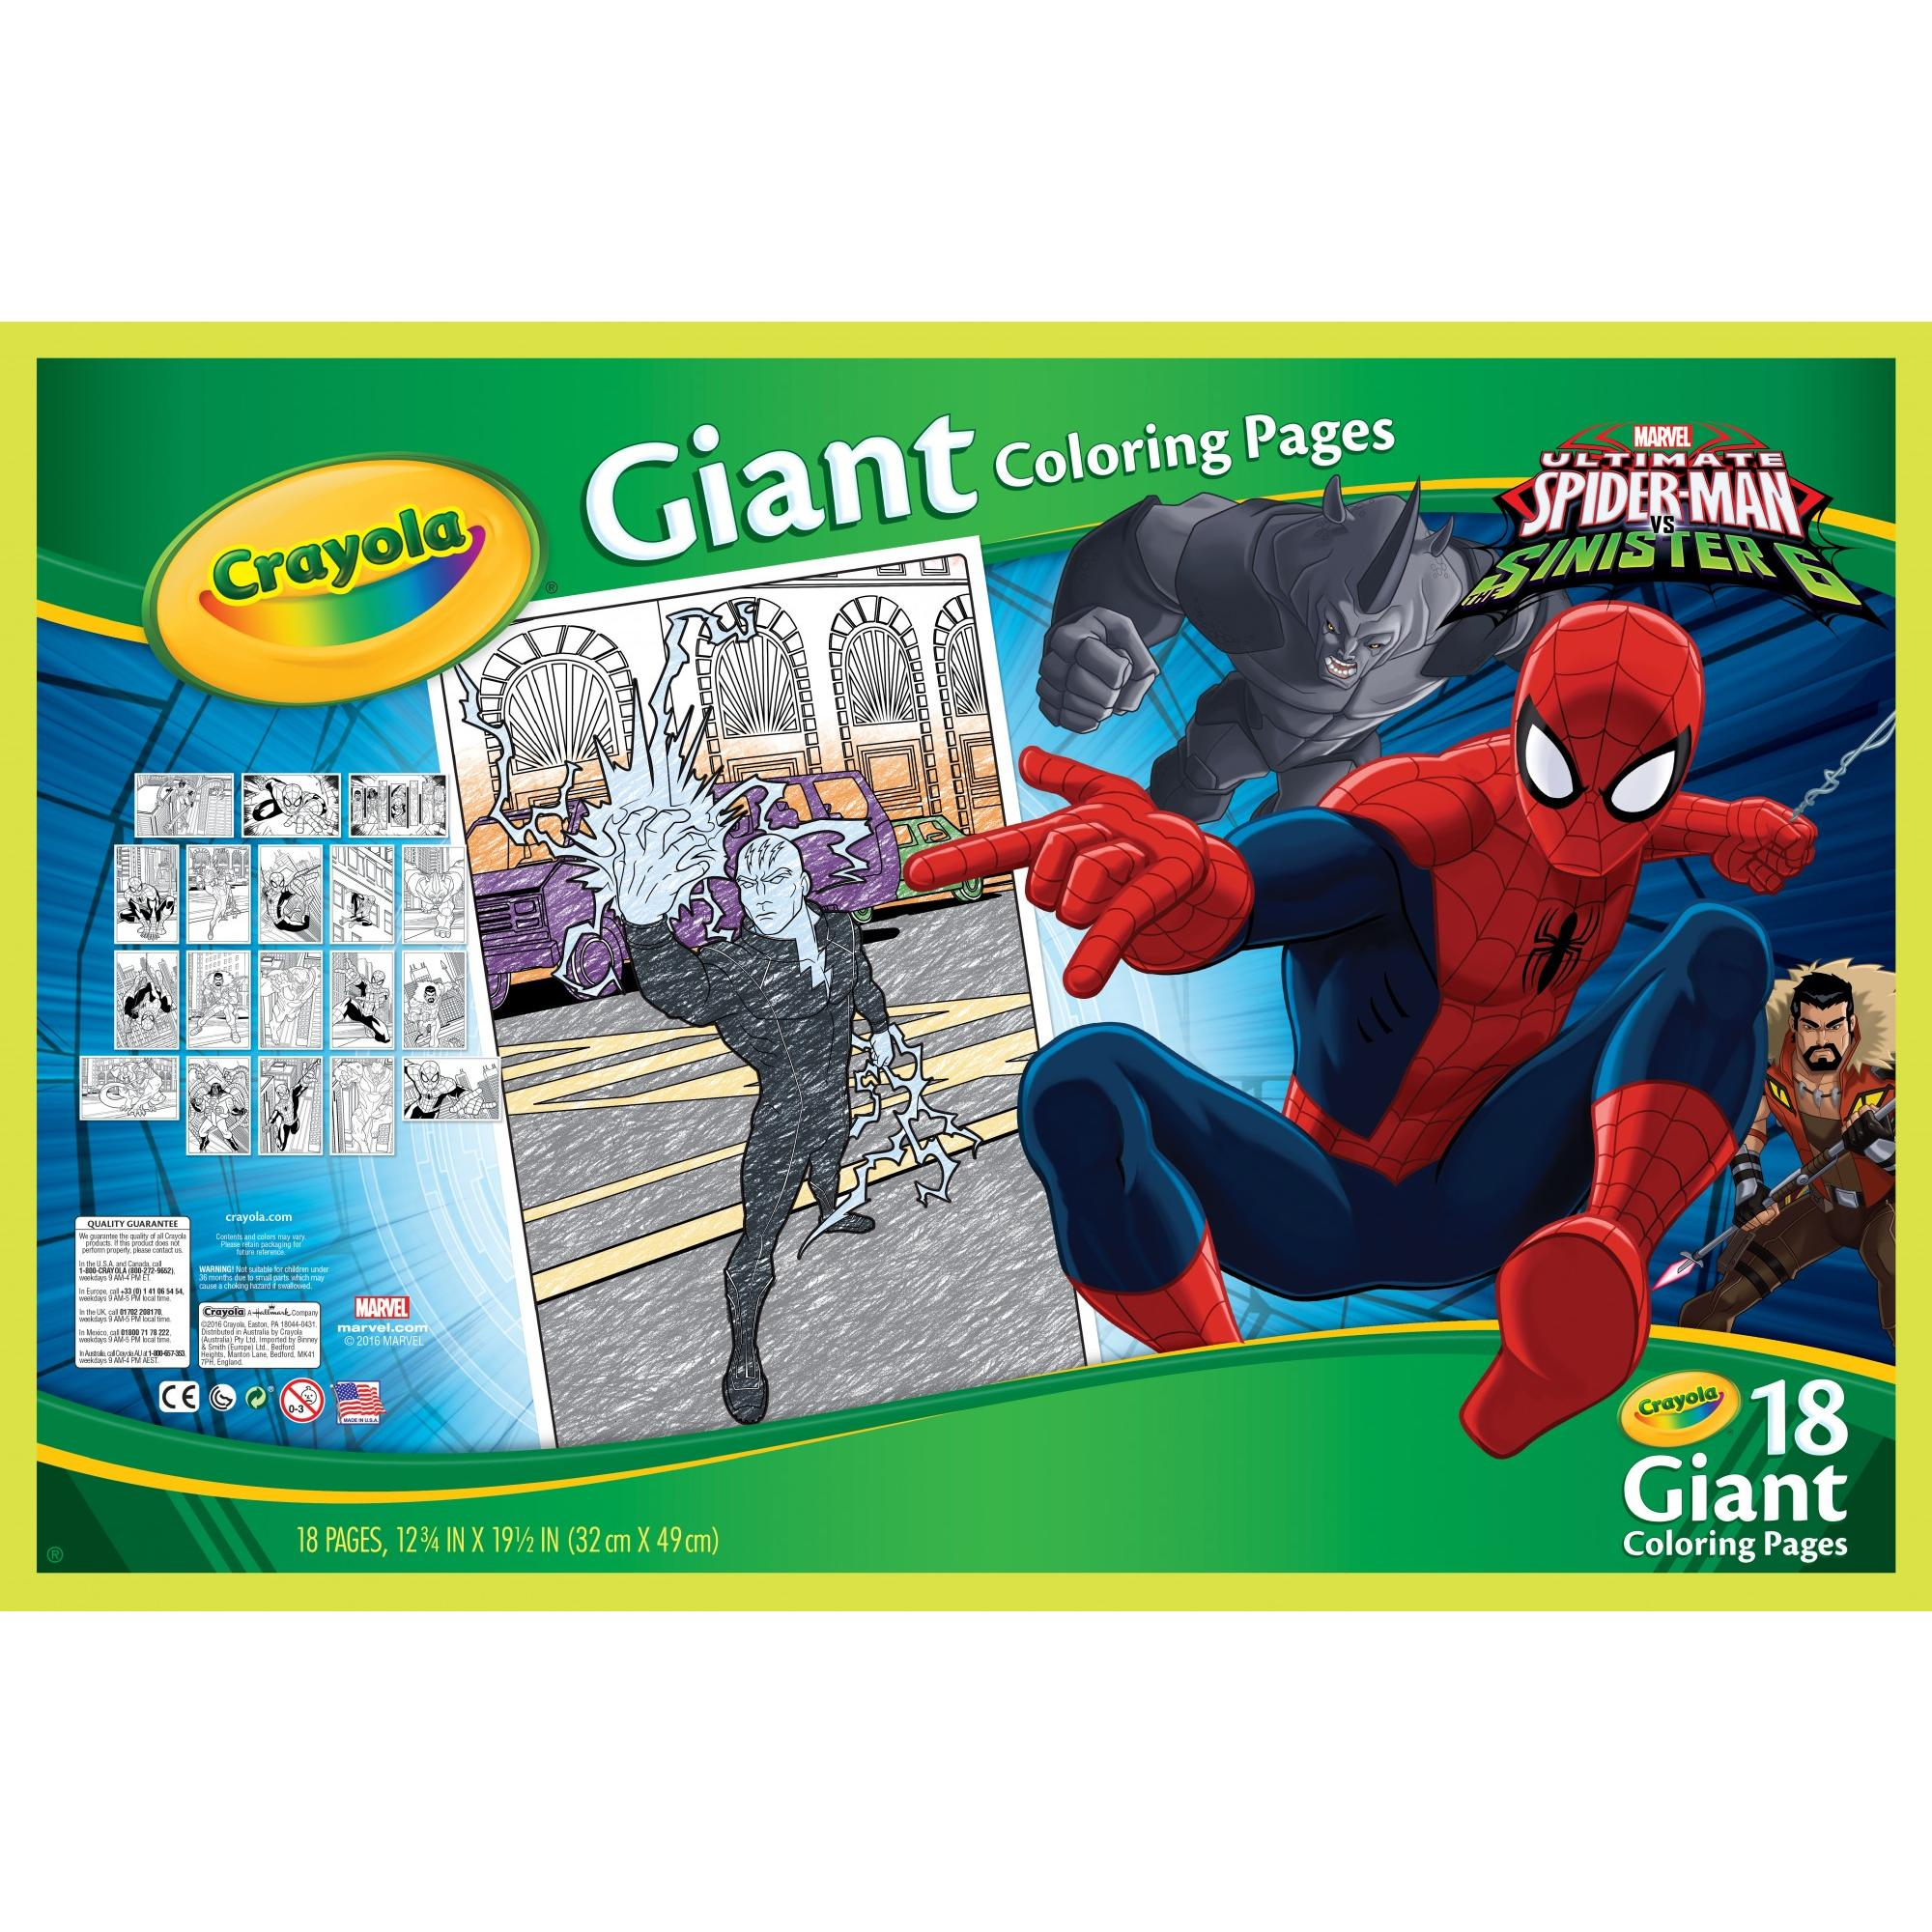 Crayola Giant Coloring Pages Featuring Spiderman 18 Pages Kids